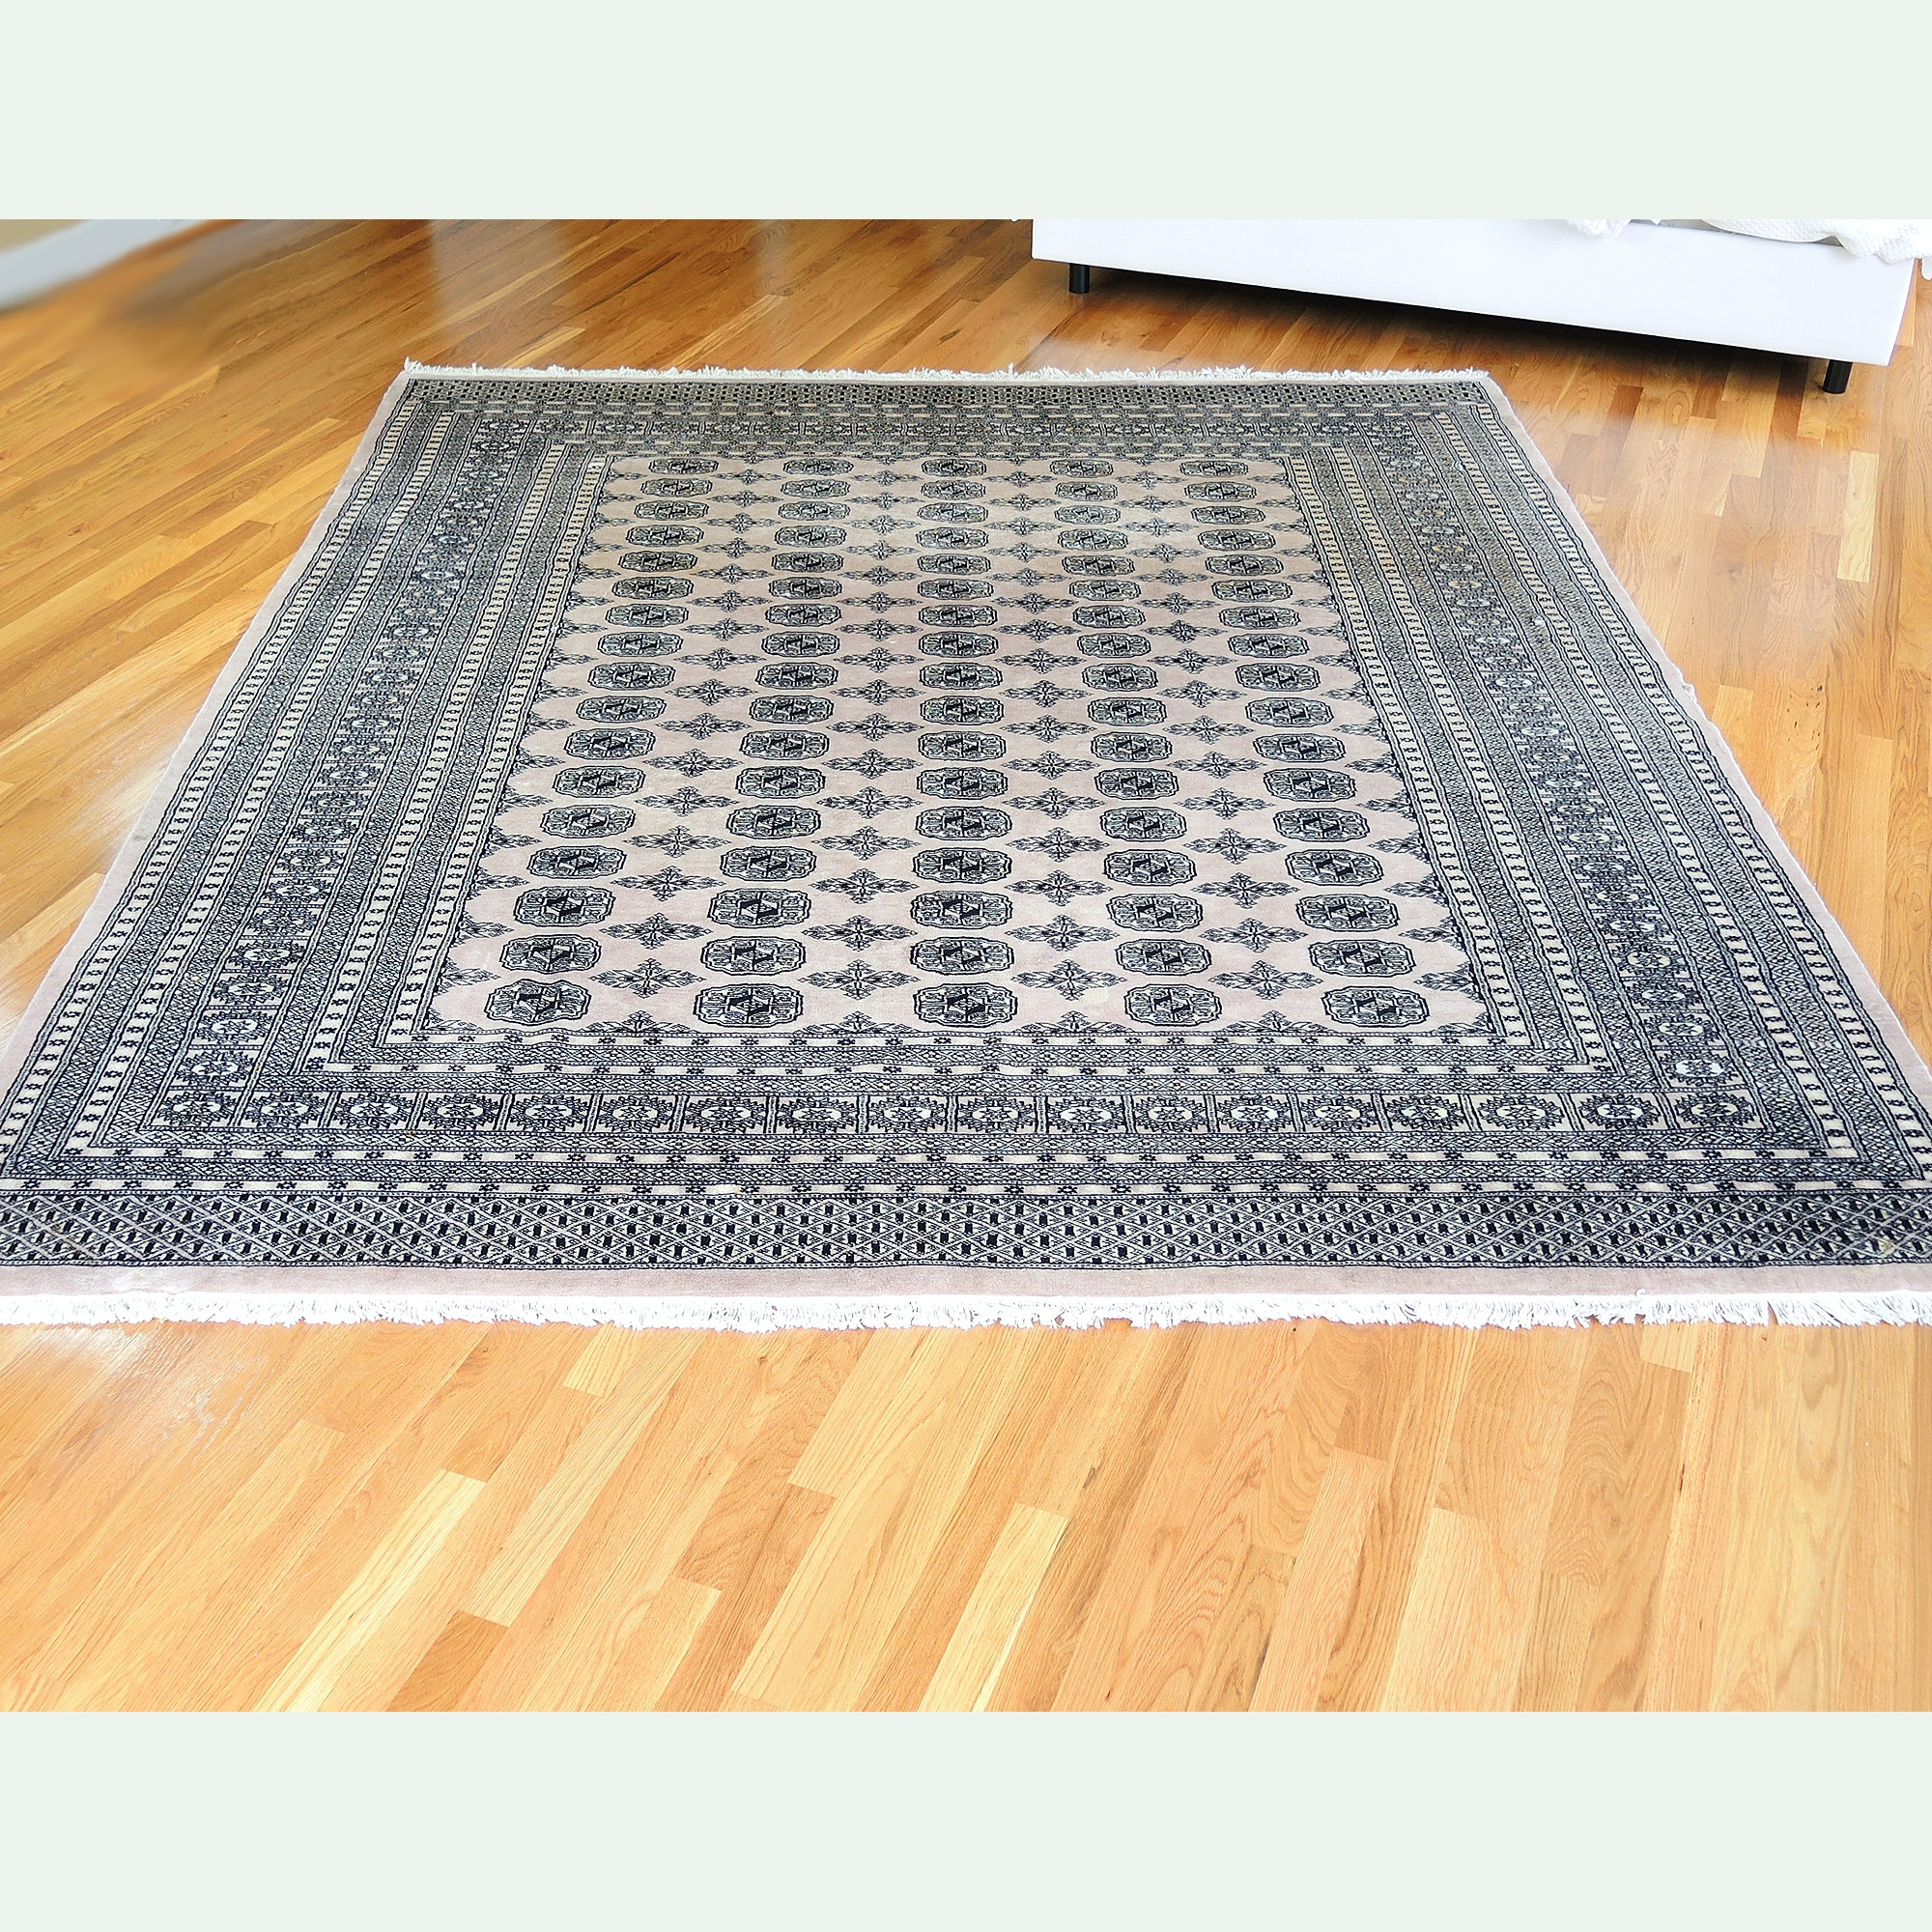 Hand-Knotted Bokhara Wool Area Rug